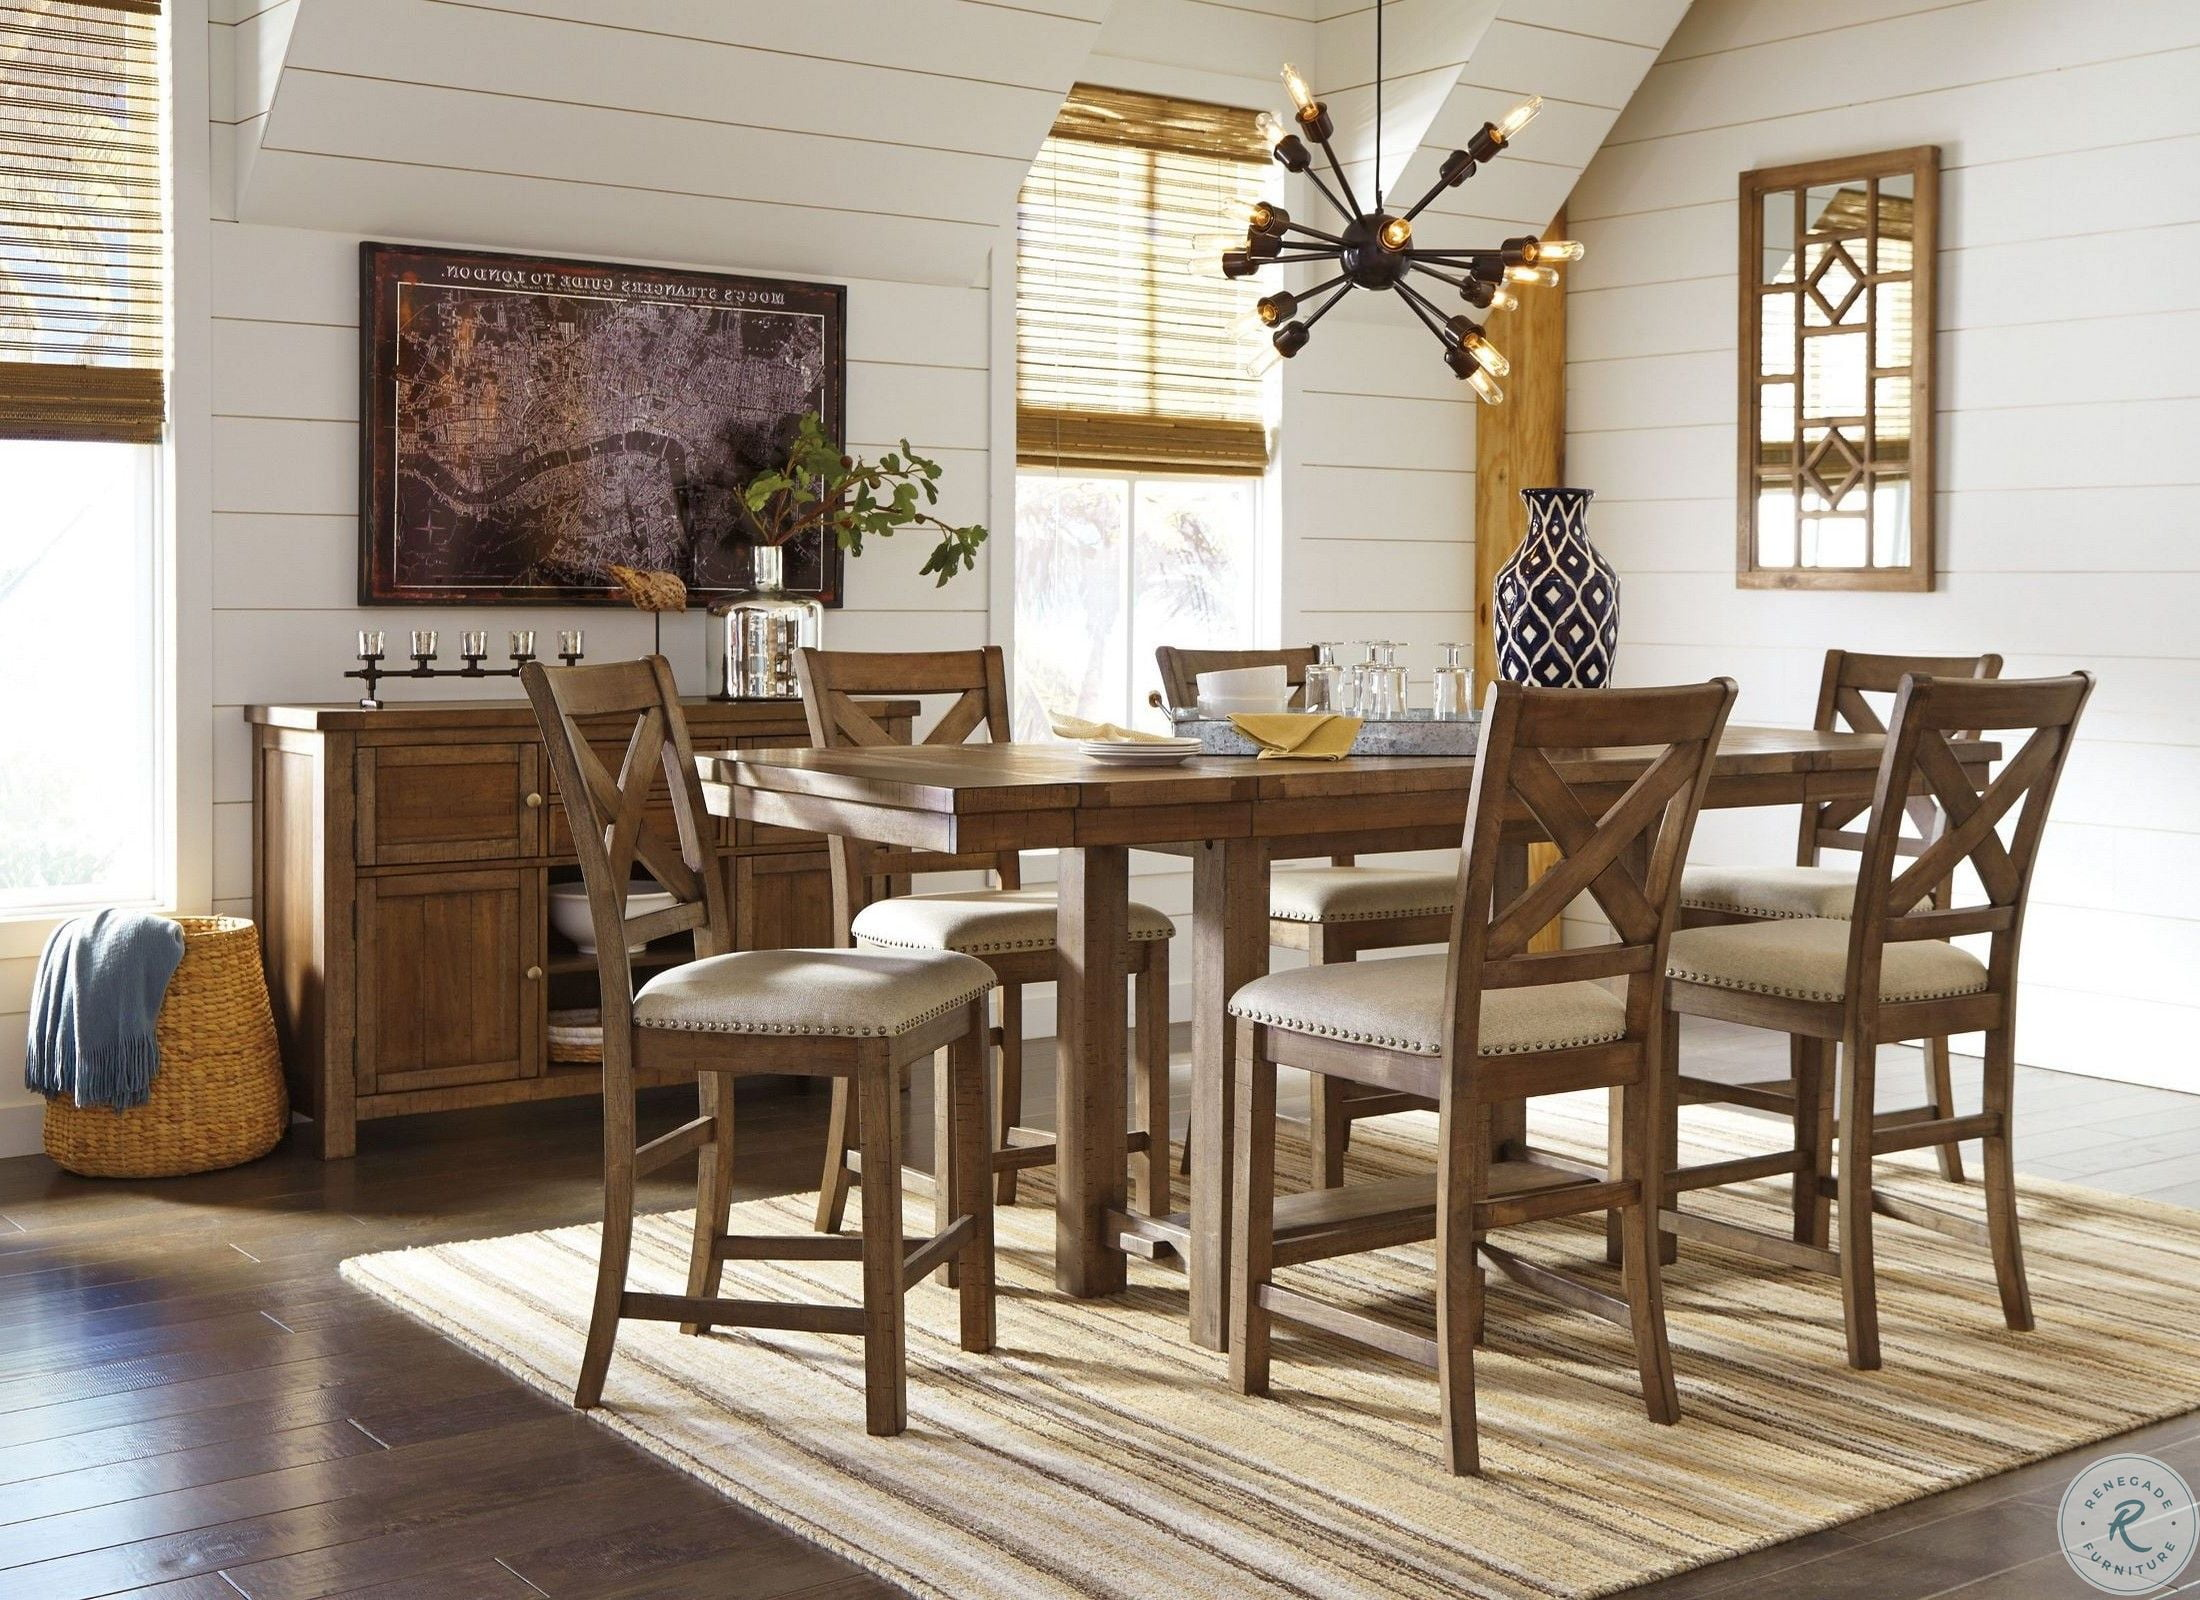 dining table decor ideas.htm torjin brown and gray long counter height dining room set from  torjin brown and gray long counter